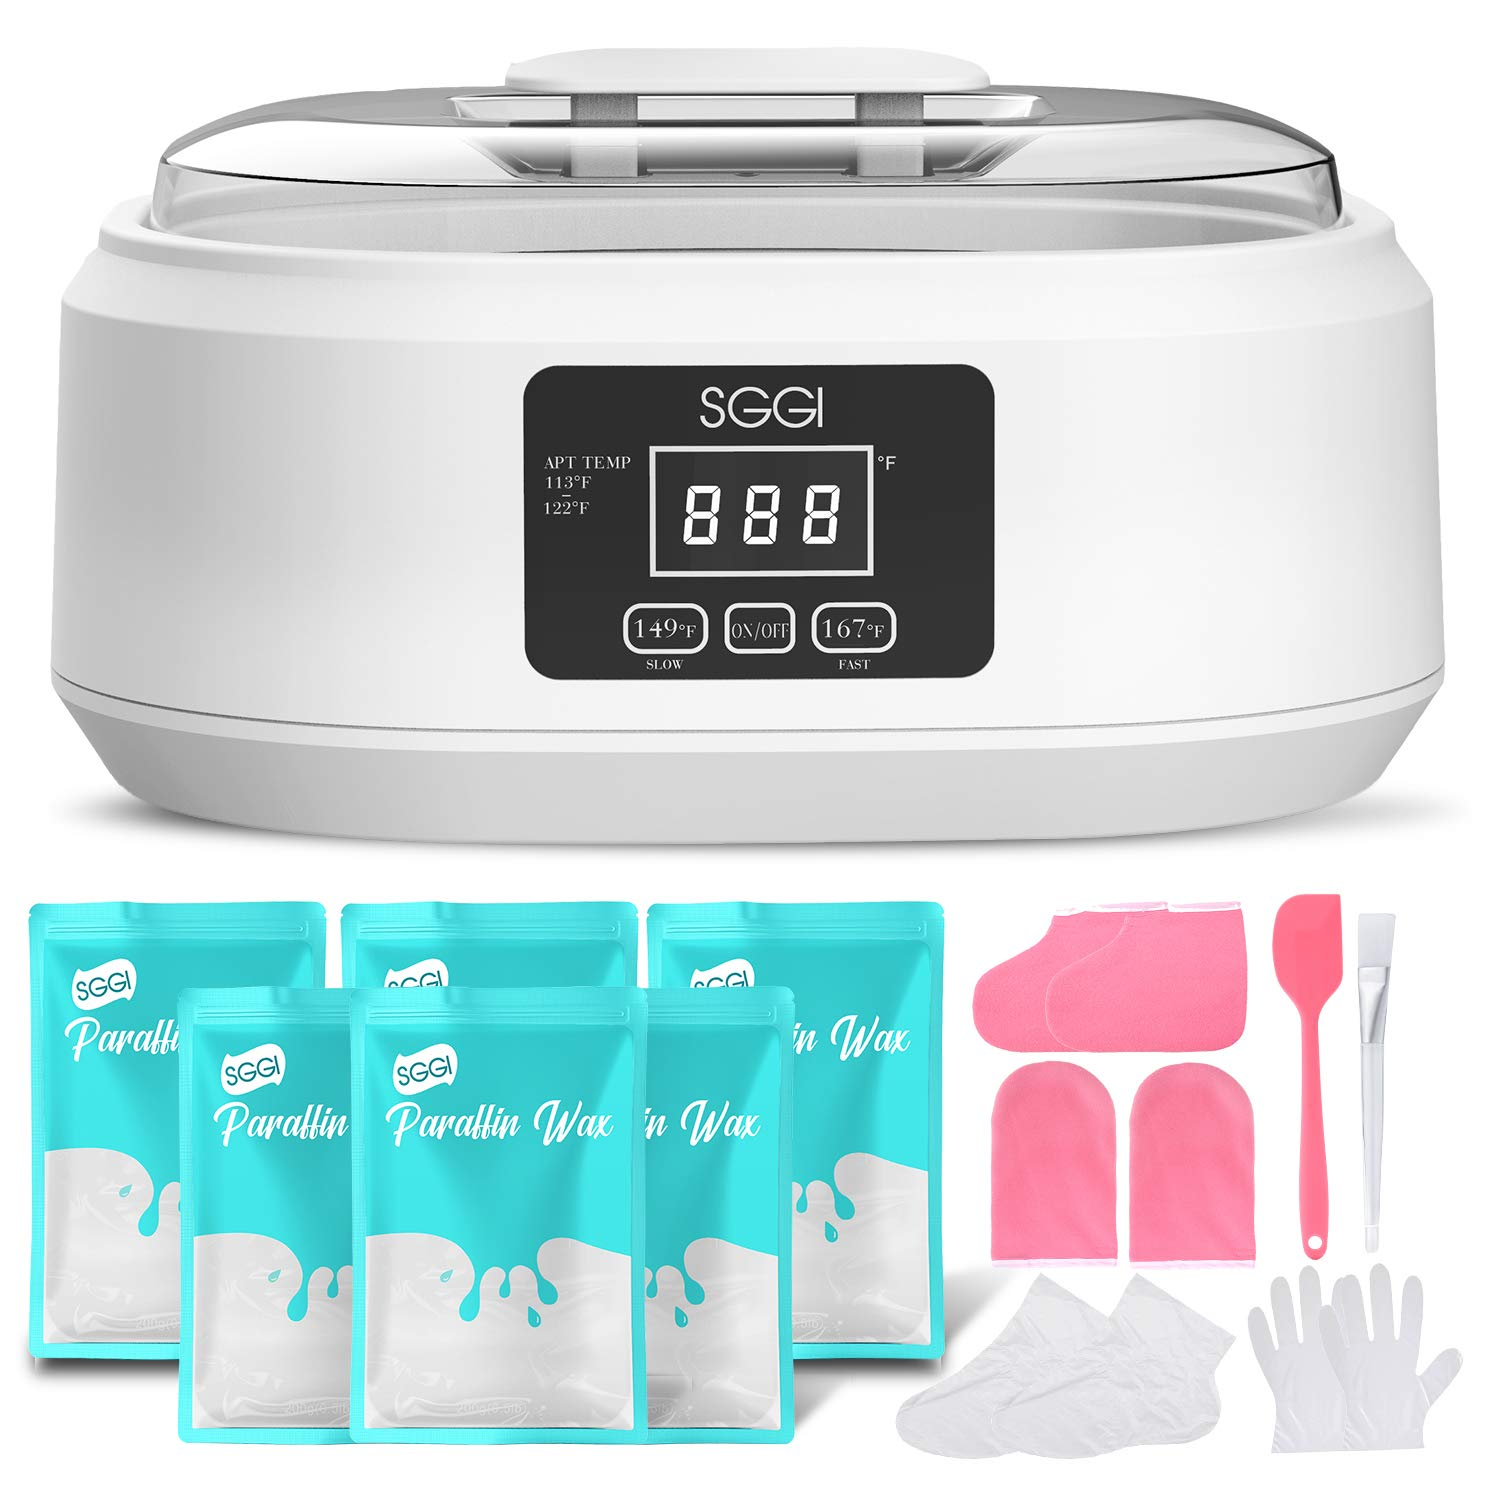 SGGI Paraffin Wax Machine Touchscreen 3000ML,6 Packs of Wax 2.6lb for Hand and Feet, Moisturizing Paraffin Spa Wax Bath Kit,Large Capacity at Home for Smooth and Soft Skin,Gift for women-Scent Free